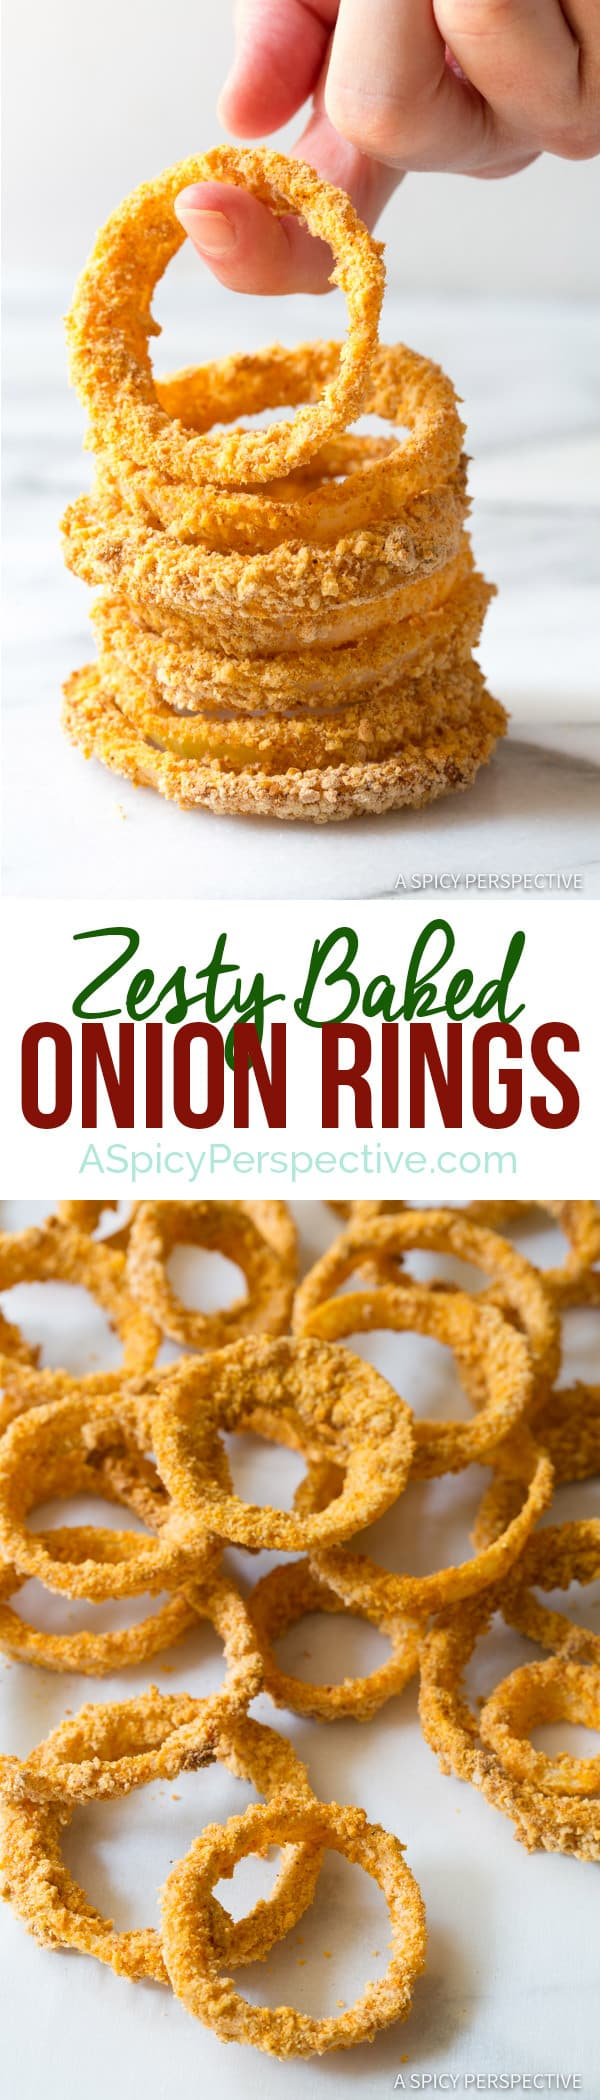 Watch Baked Onion Rings video